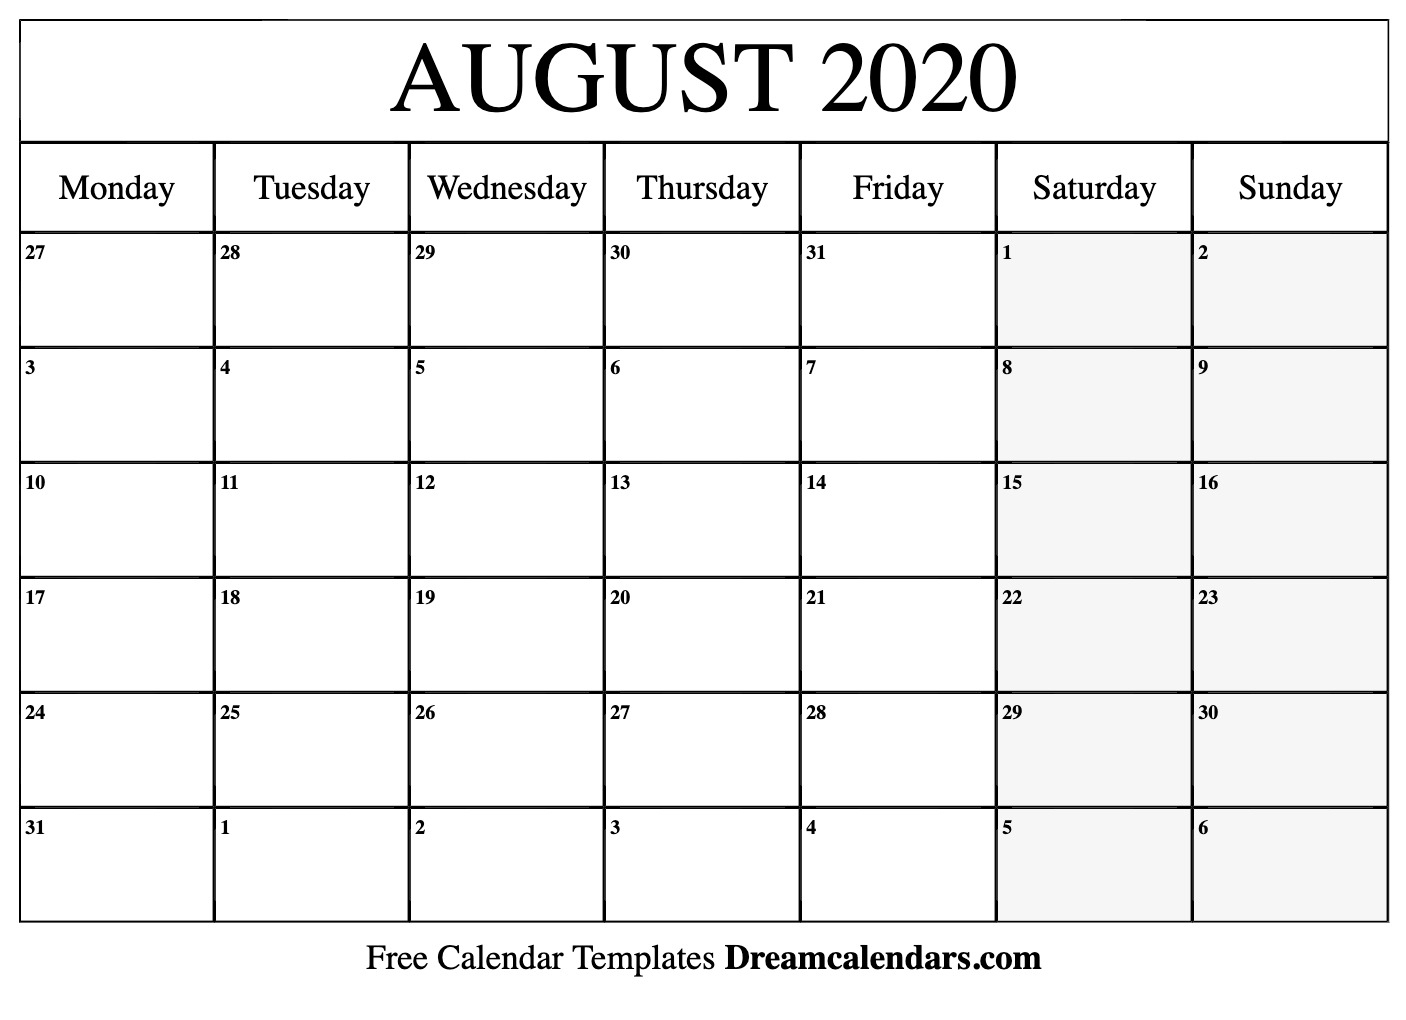 Printable August 2020 Calendar regarding 2020Printable Monday Through Sunday Calendars